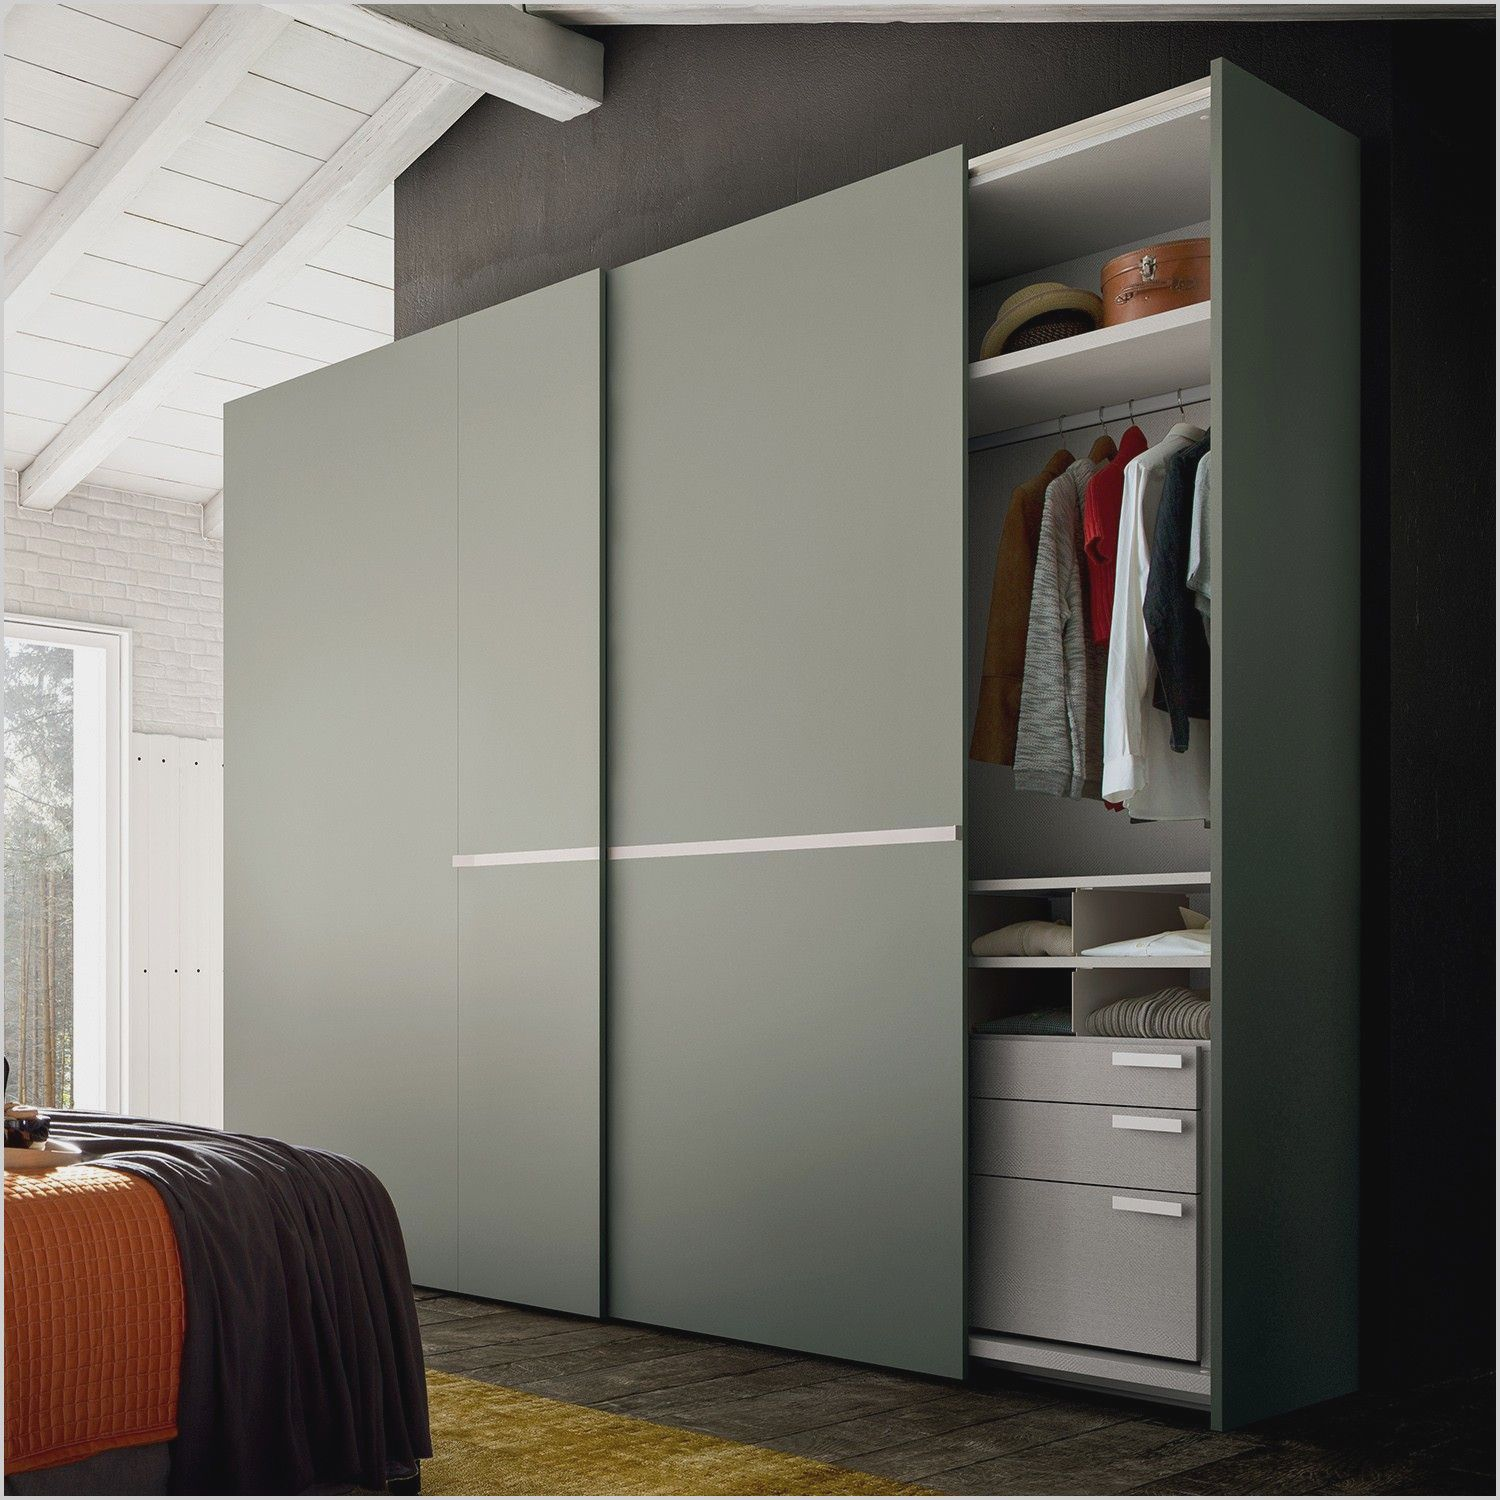 Bedroom Closet Cabinet Design In 2020 Bedroom Closet Design Sliding Door Wardrobe Designs Wardrobe Door Designs